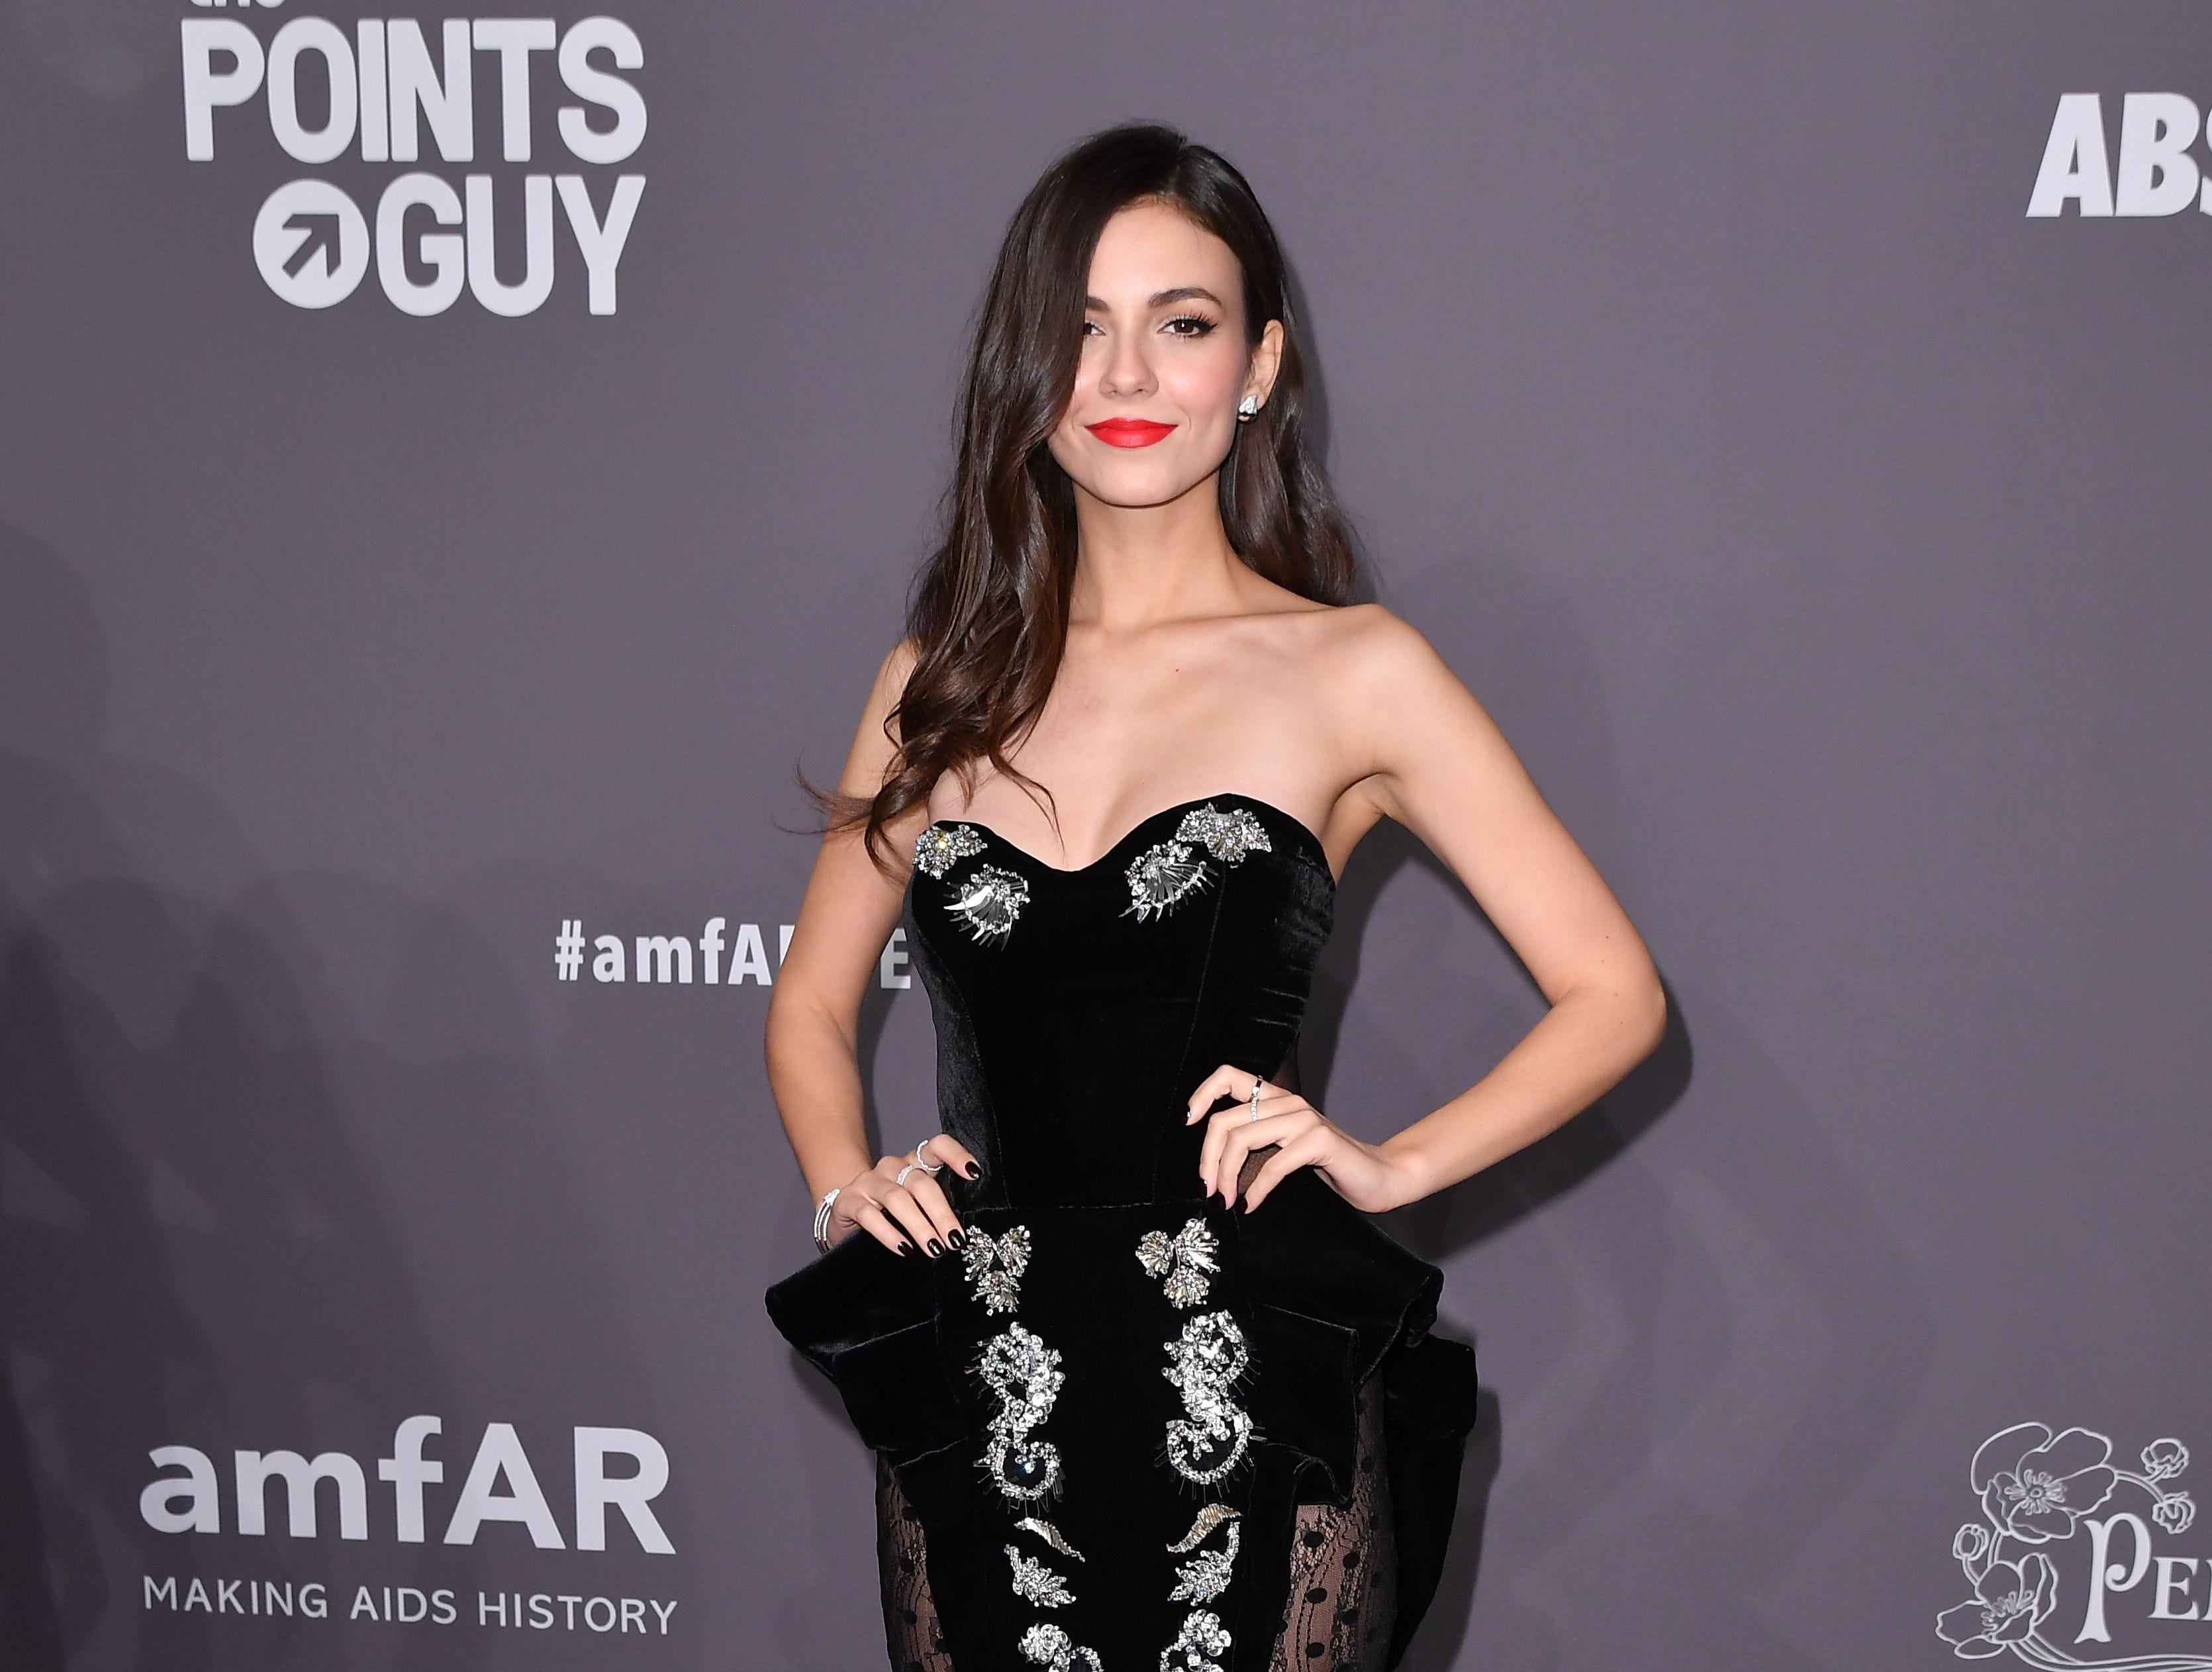 US actress Victoria Justice arrives at The amfAR Gala New York, the Foundations 21st annual benefit for AIDS research during New York Fashion Week at Cipriani Wall Street on February 6, 2019 in New York. (Photo by ANGELA WEISS / AFP)ANGELA WEISS/AFP/Getty Images ORG XMIT: The Found ORIG FILE ID: AFP_1D4682